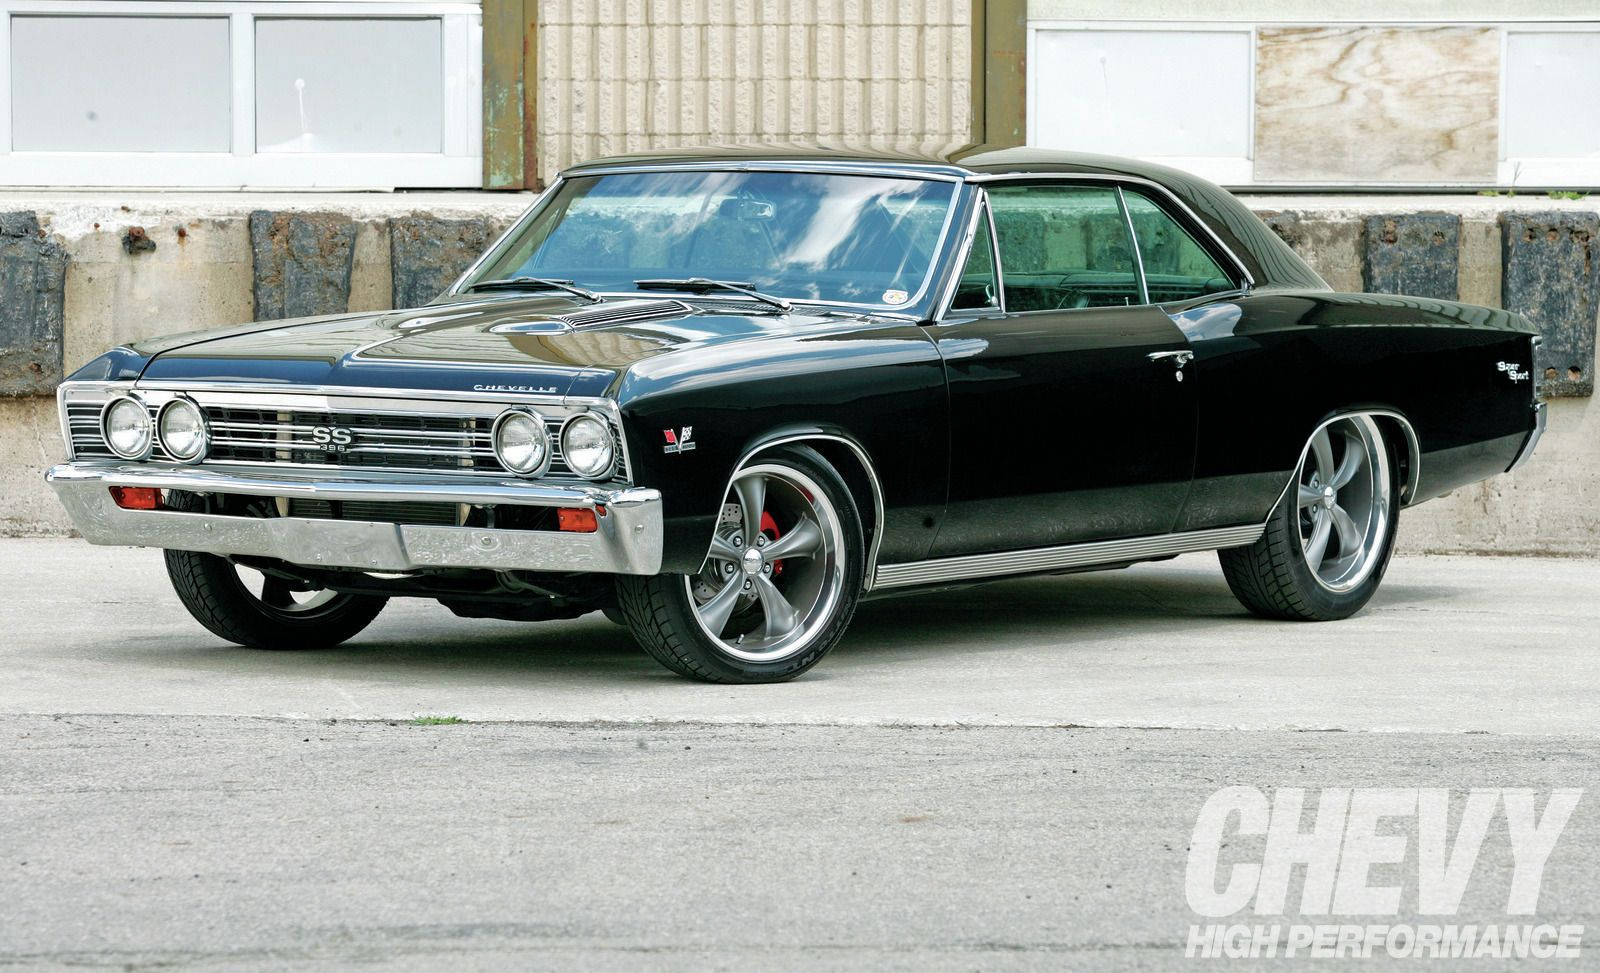 All Chevy chevy 1967 : 1967 Chevy Chevelle Ss Front Side Photo 6 | Paint jobs | Pinterest ...